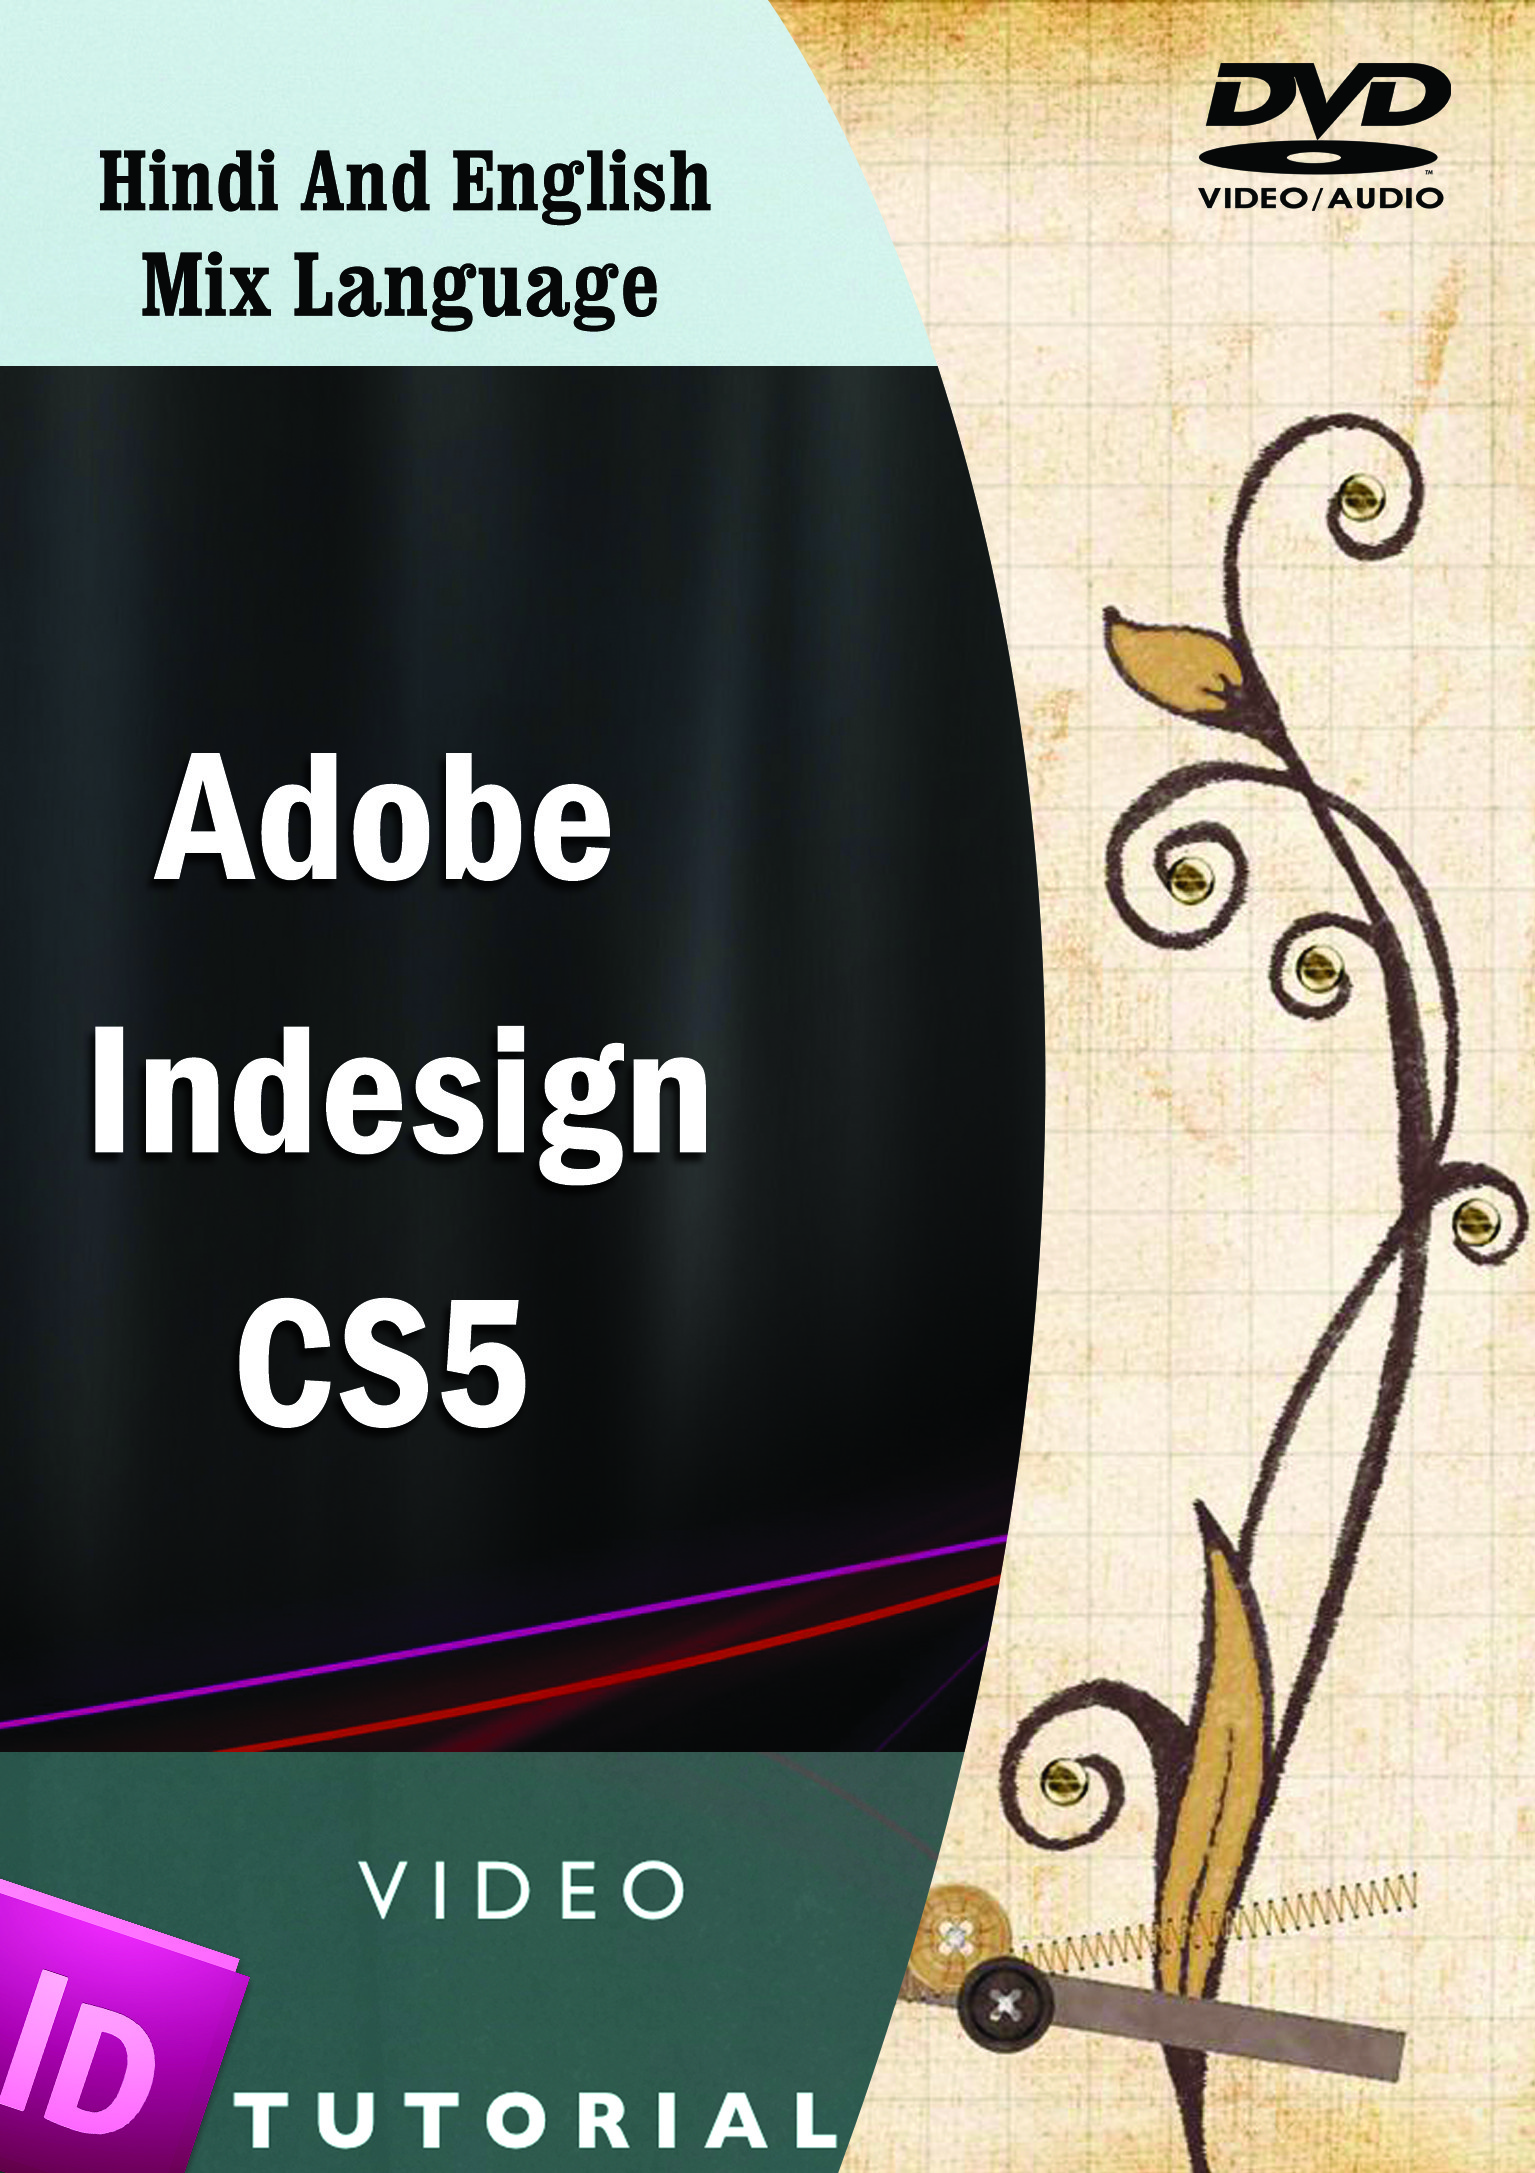 Lsoit Adobe Indesign CS5 Tutorials DVD(DVD)